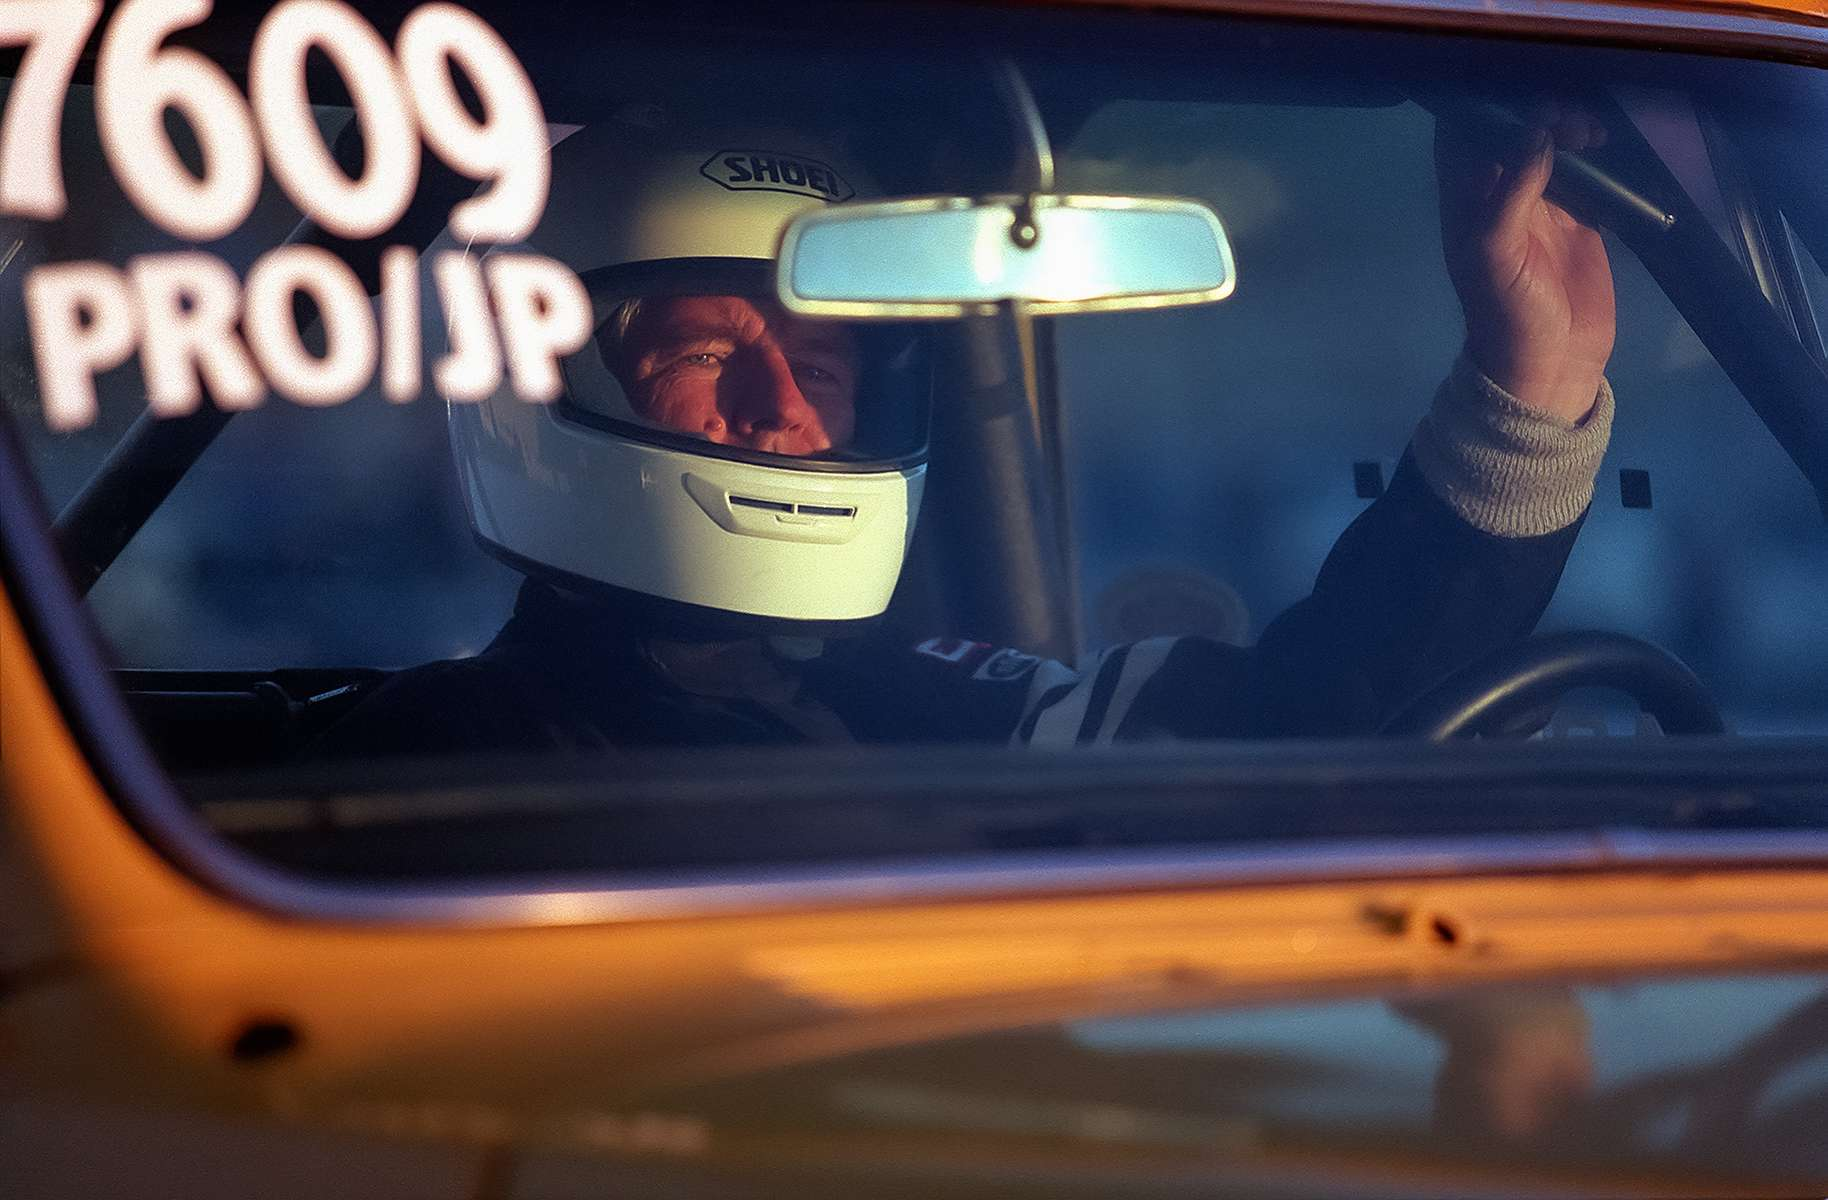 Larry Ball awaits the start of the next heat in his modified 1971 Chevy truck at the Wednesday Night Drag Races at Sears Point Raceway in Sonoma, Calif.DAVID ELKINS/REGISTER